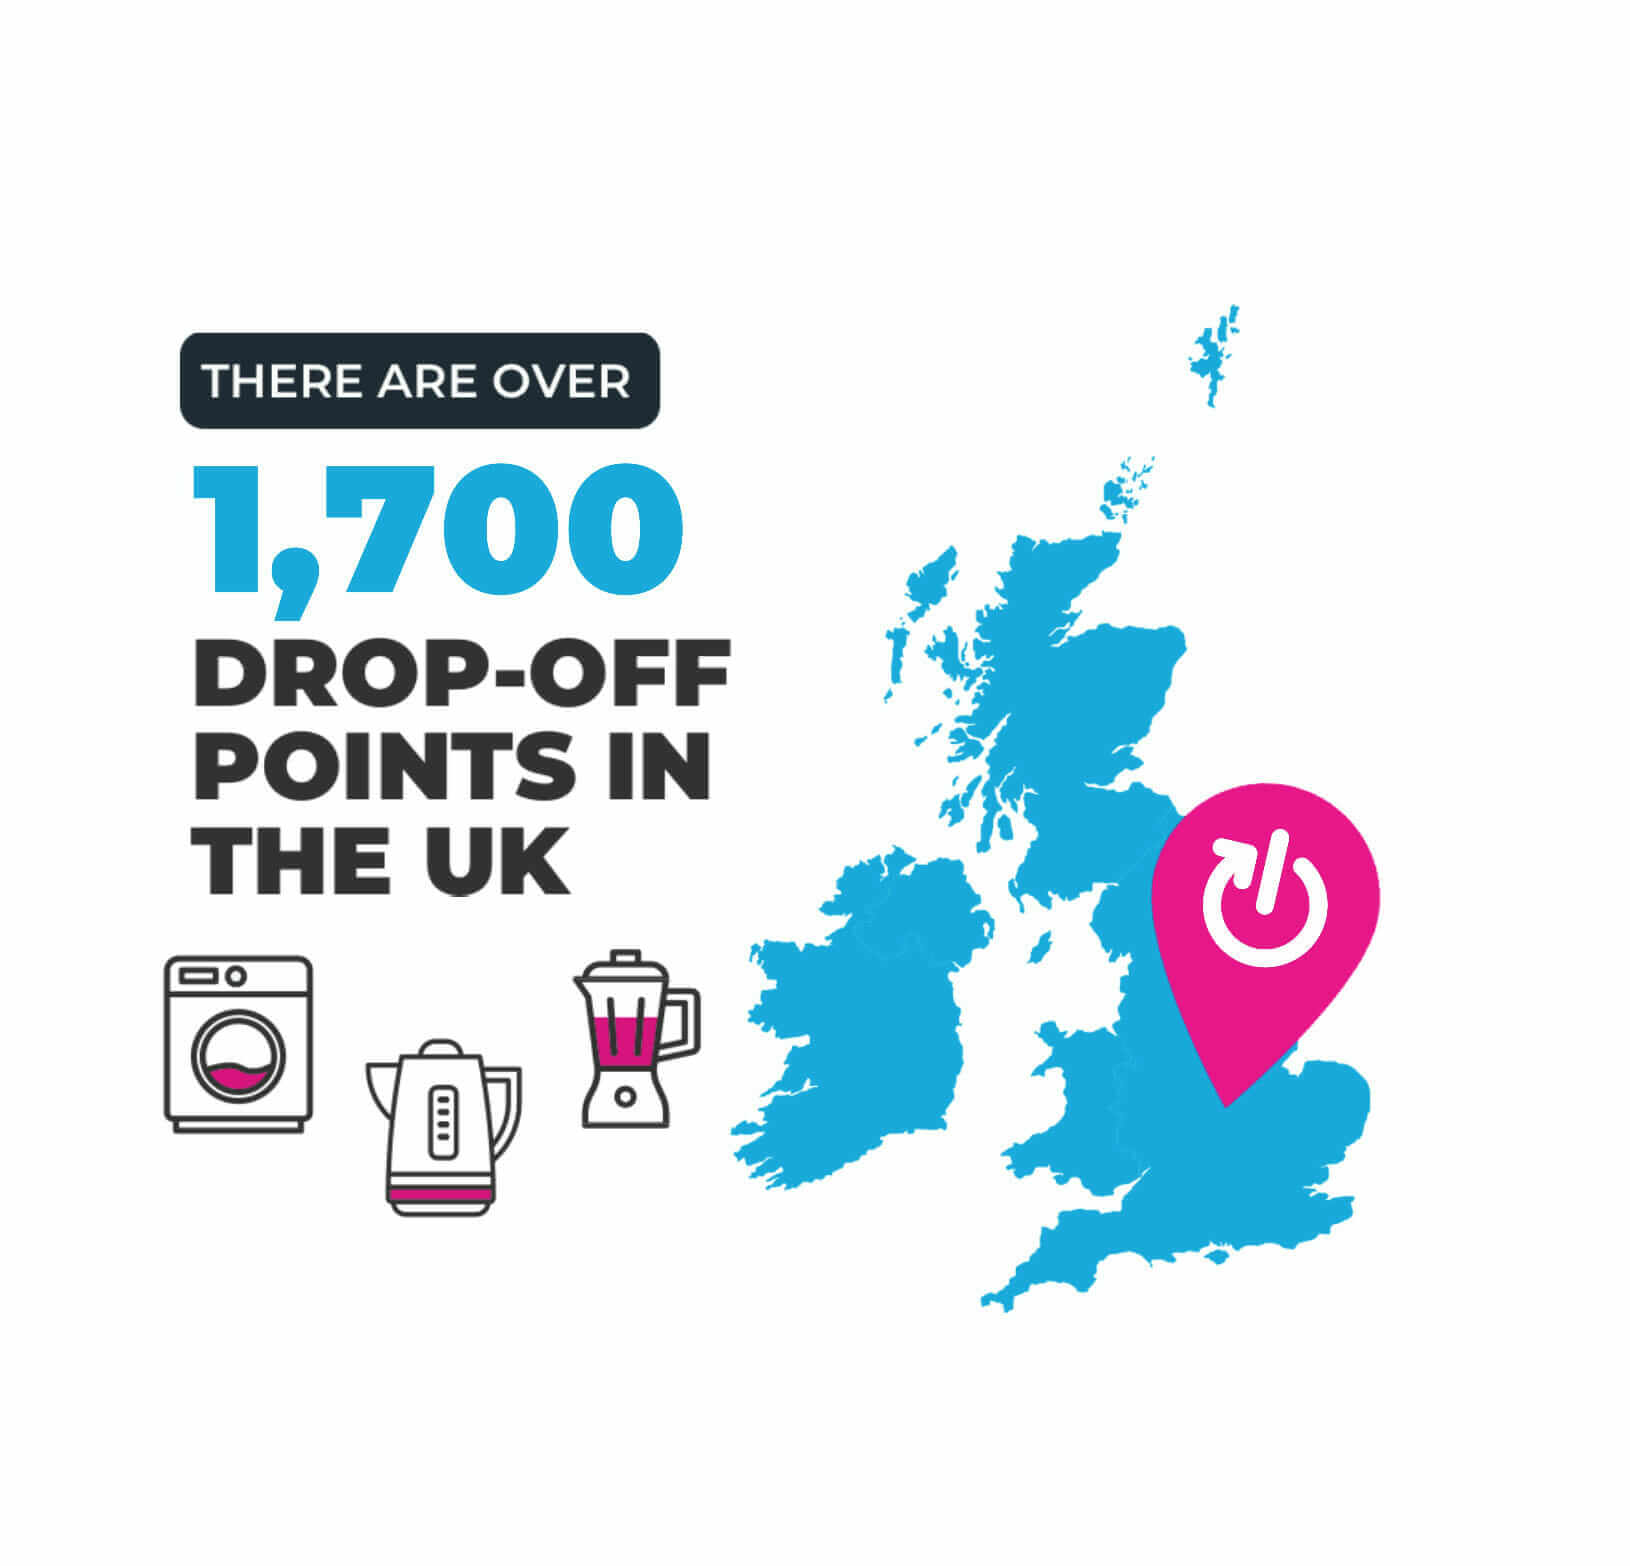 infographic showing number of drop off points in the UK = 1,700